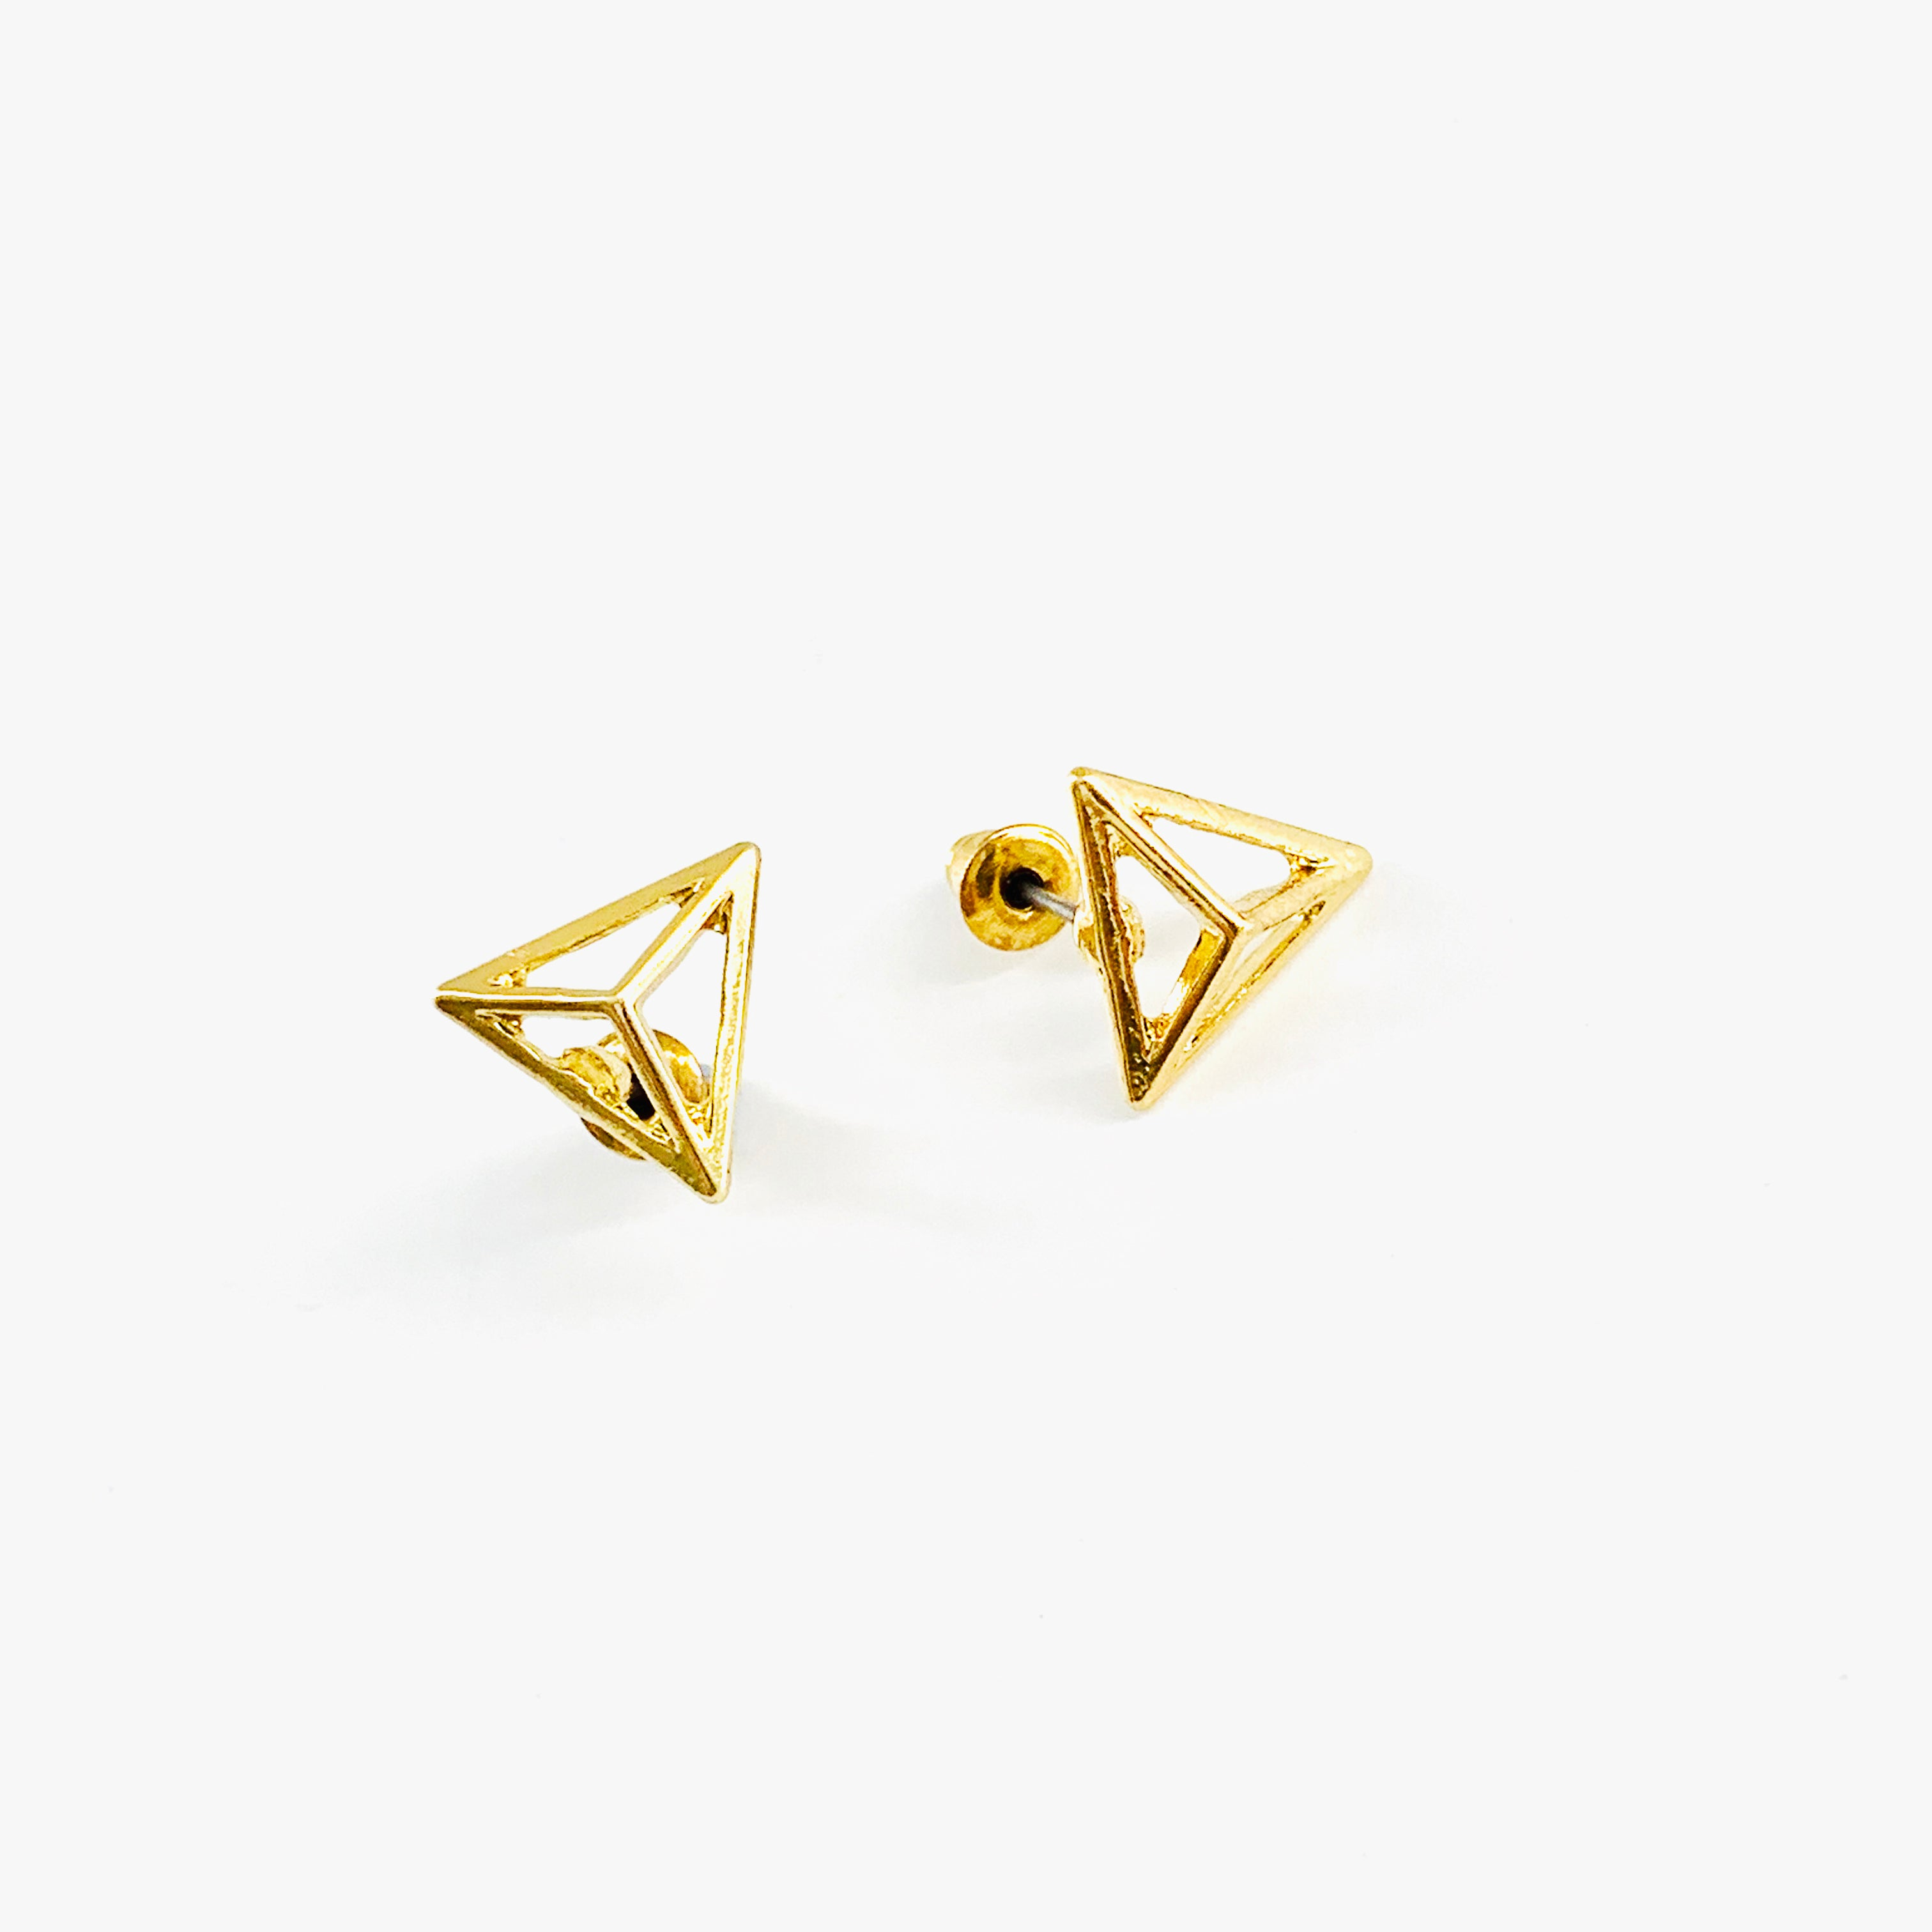 Hollow triangle pyramid gold ear studs